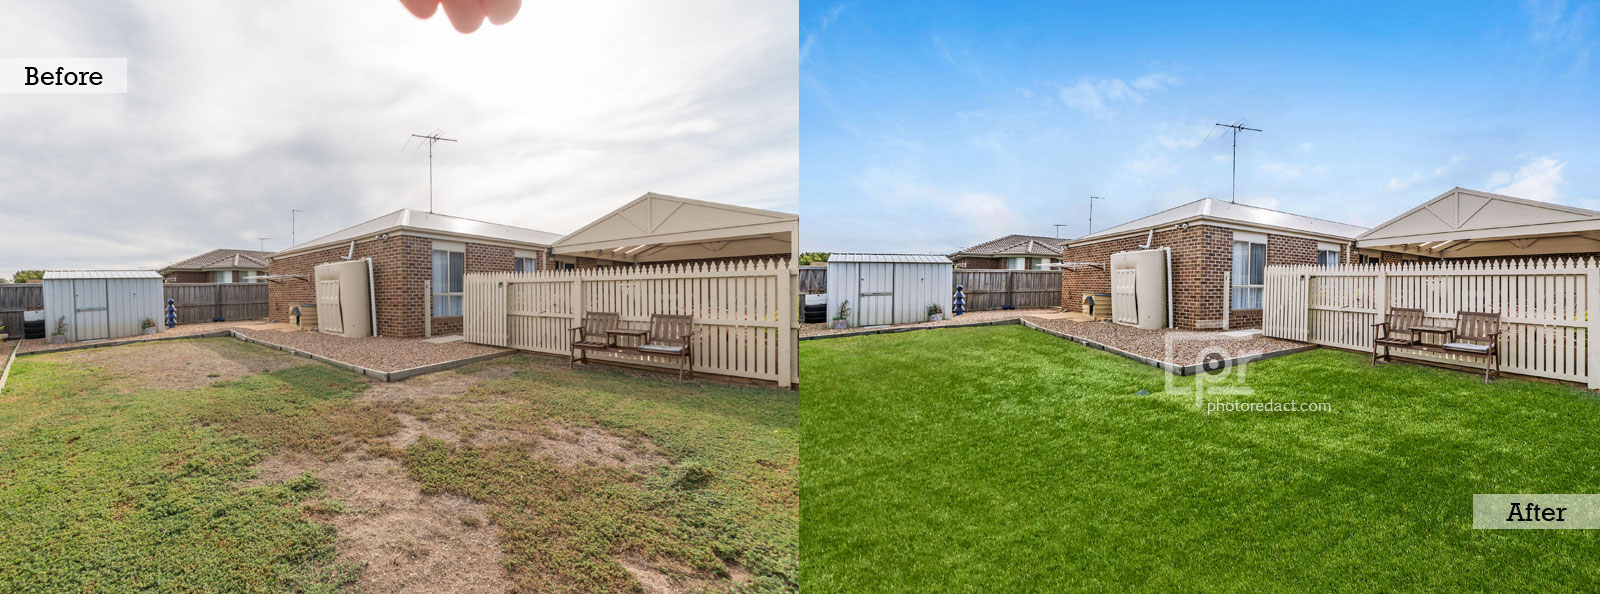 Real Estate Photo Sky Change Service